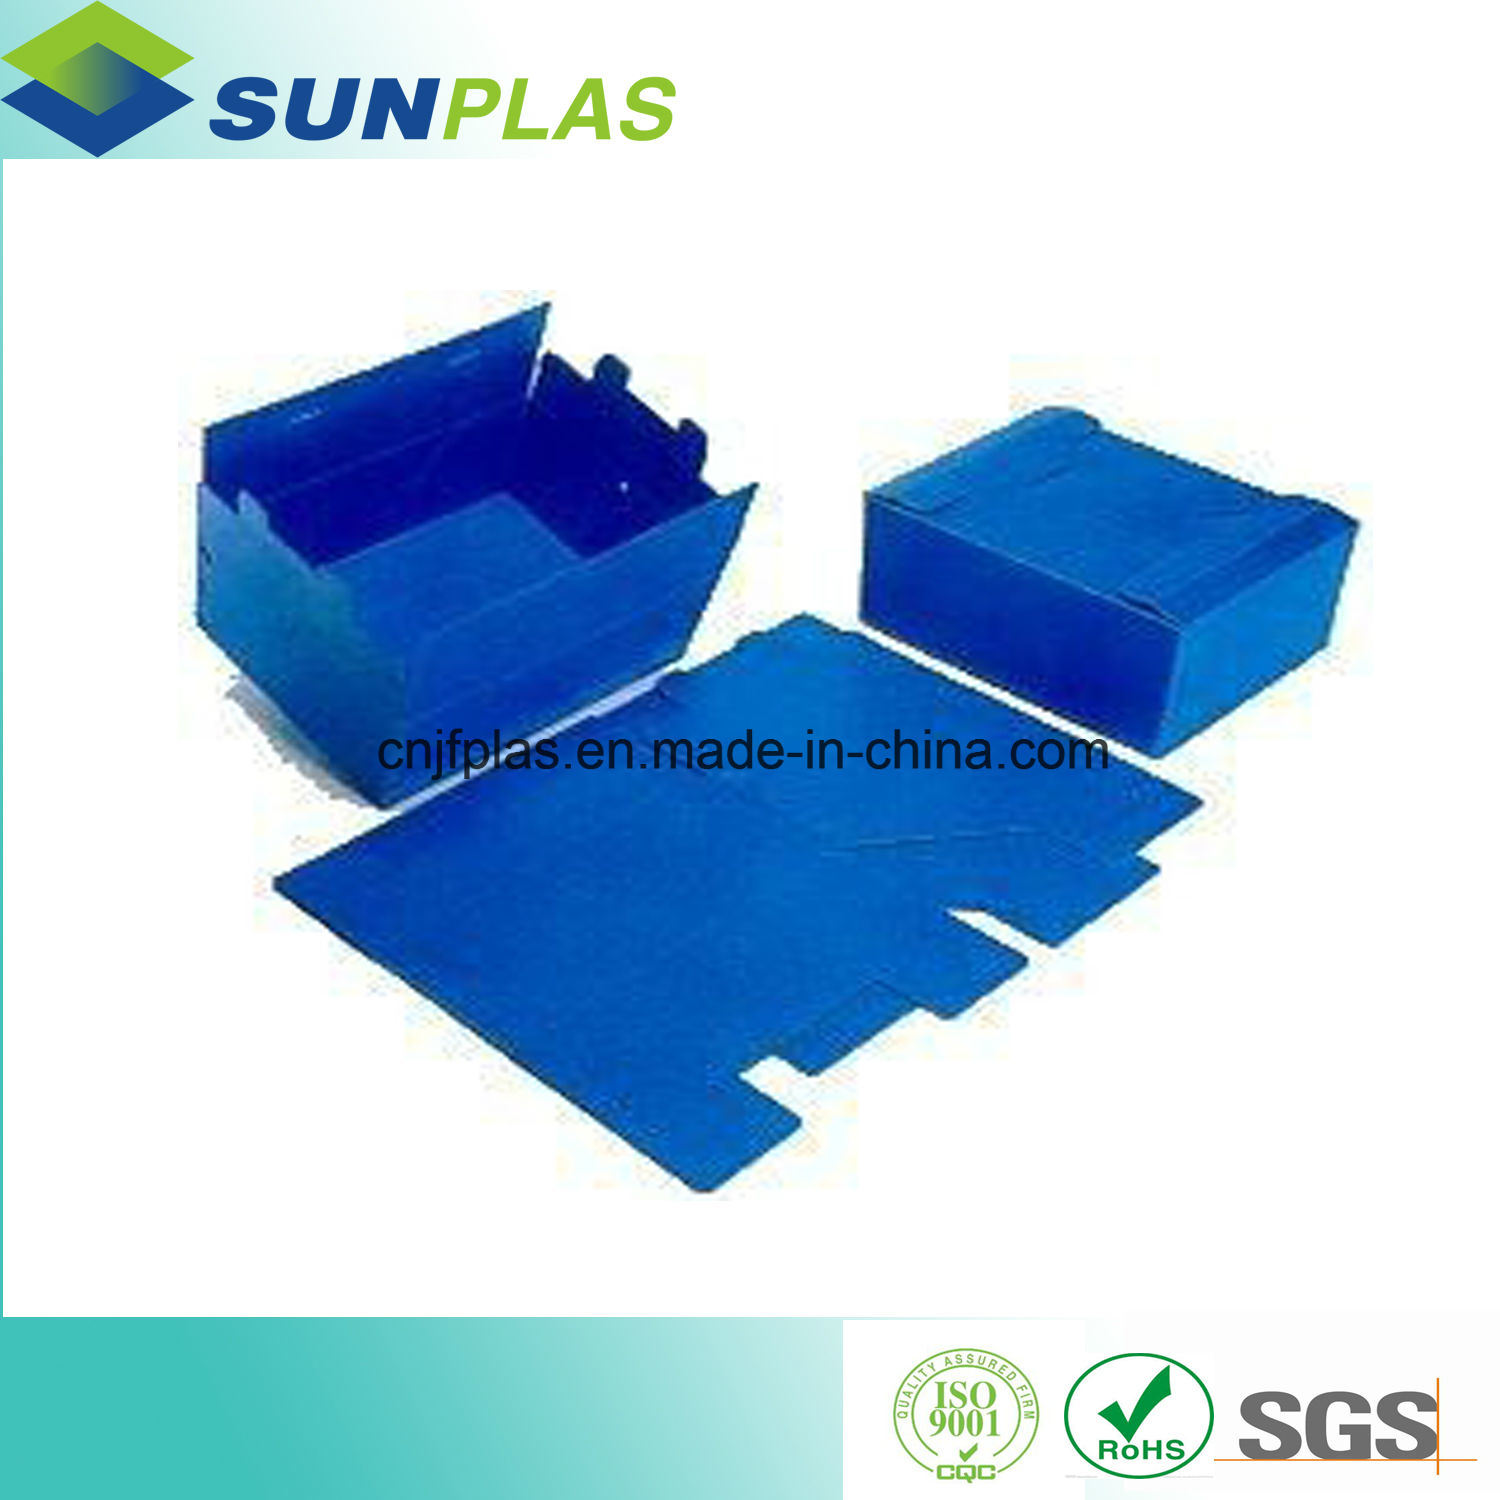 PP Coroplast Sheet / PP Hollow Sheet/ PP Corrugated Sheet for Package and Printing